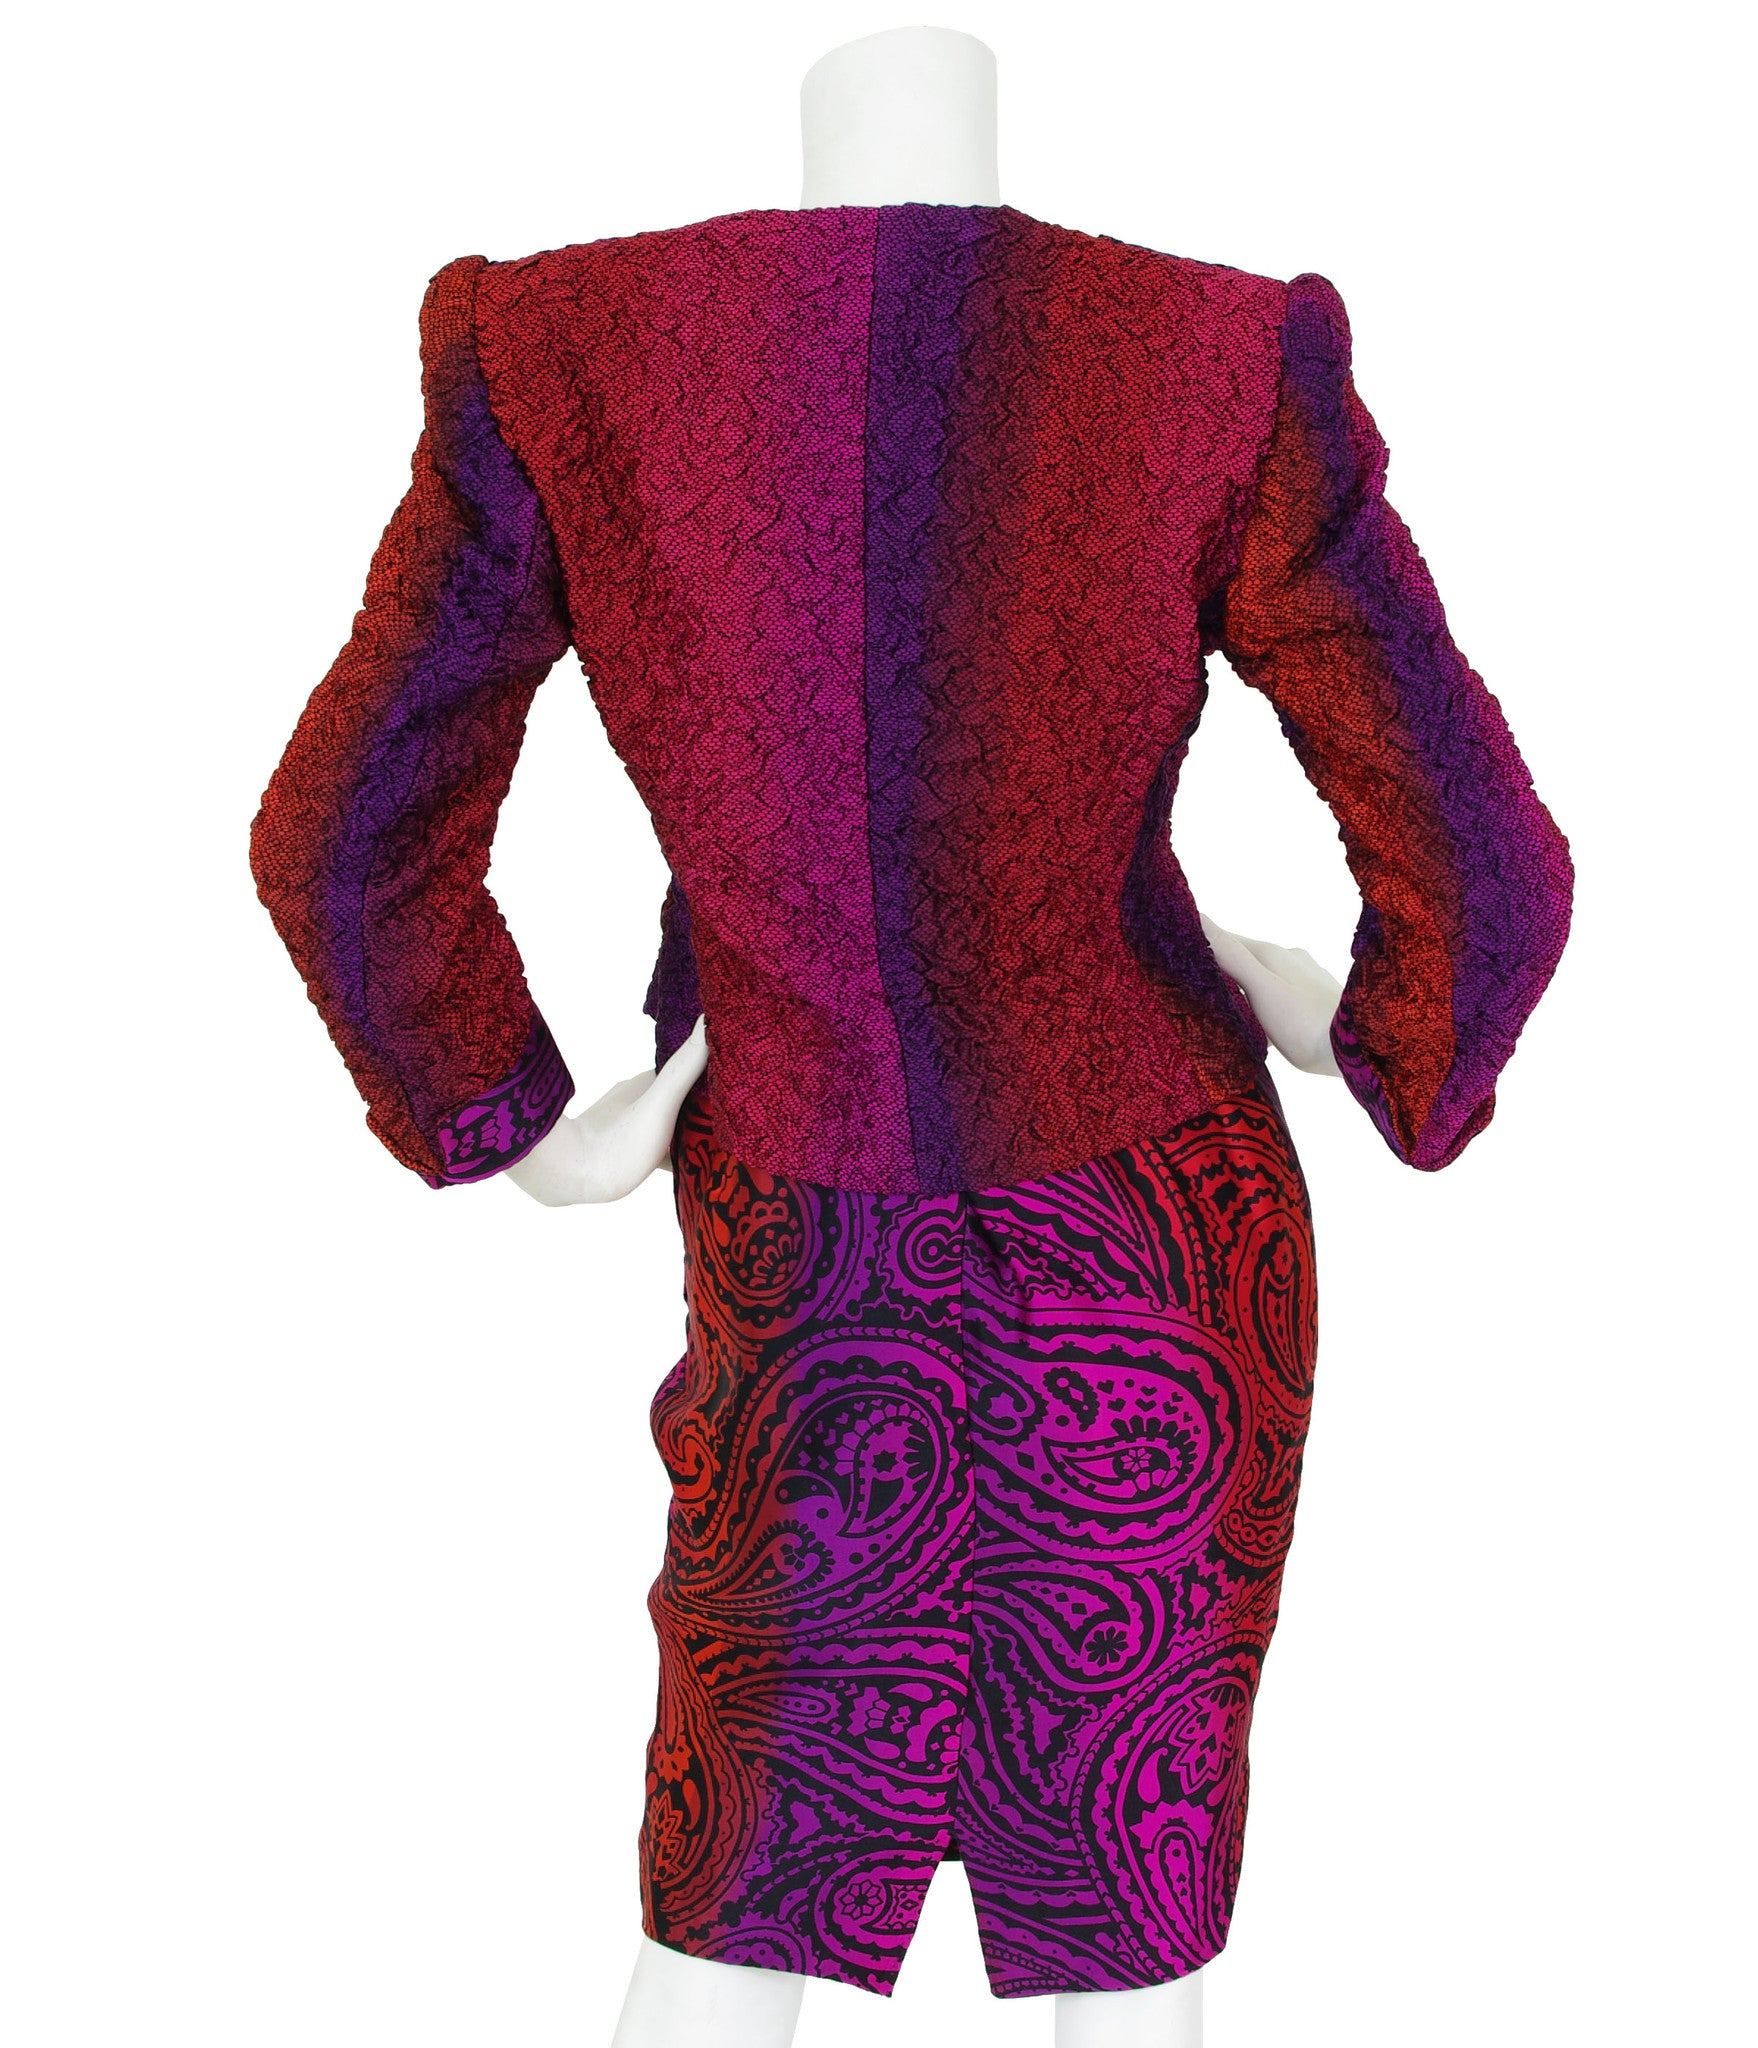 Couture 1980's Ombre Paisley Silk Three Piece Dress Suit